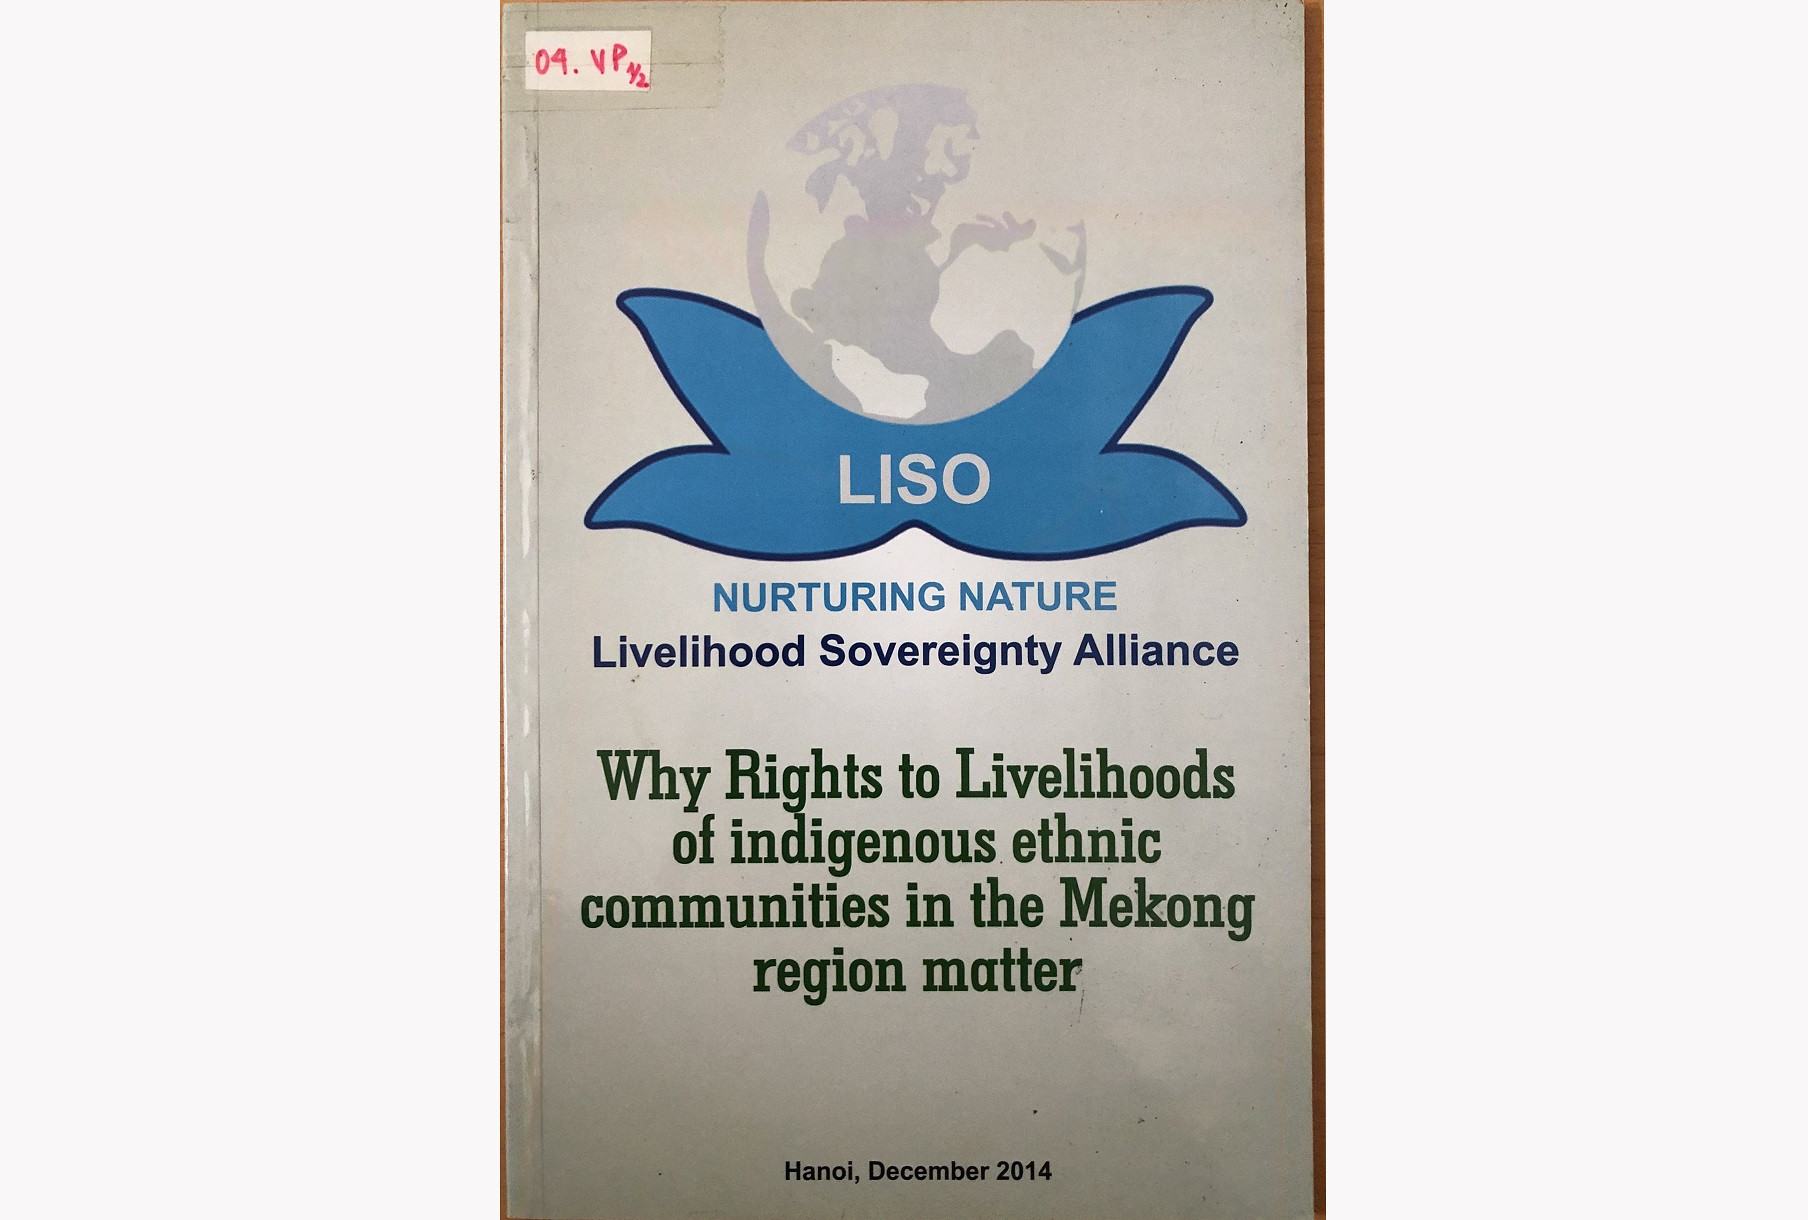 Why Rights to livelihood of indigenous ethnic communities in the Mekong region matter